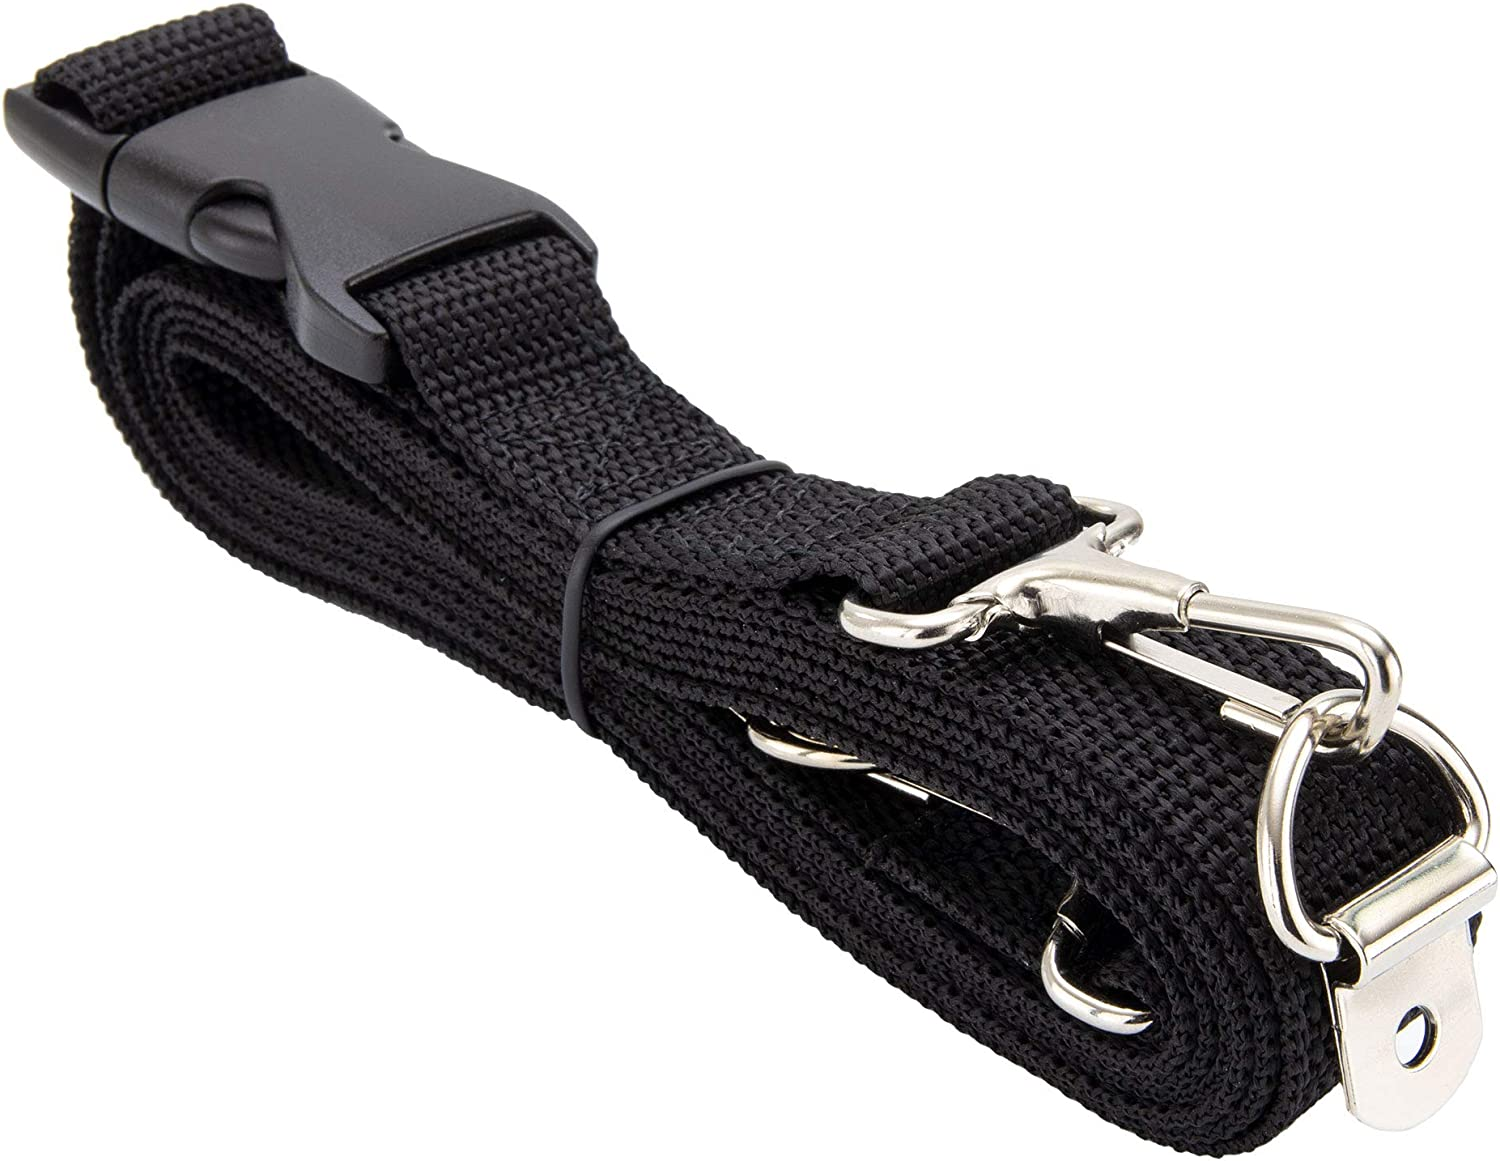 RecPro RV Furniture Tie-Down Straps 130"